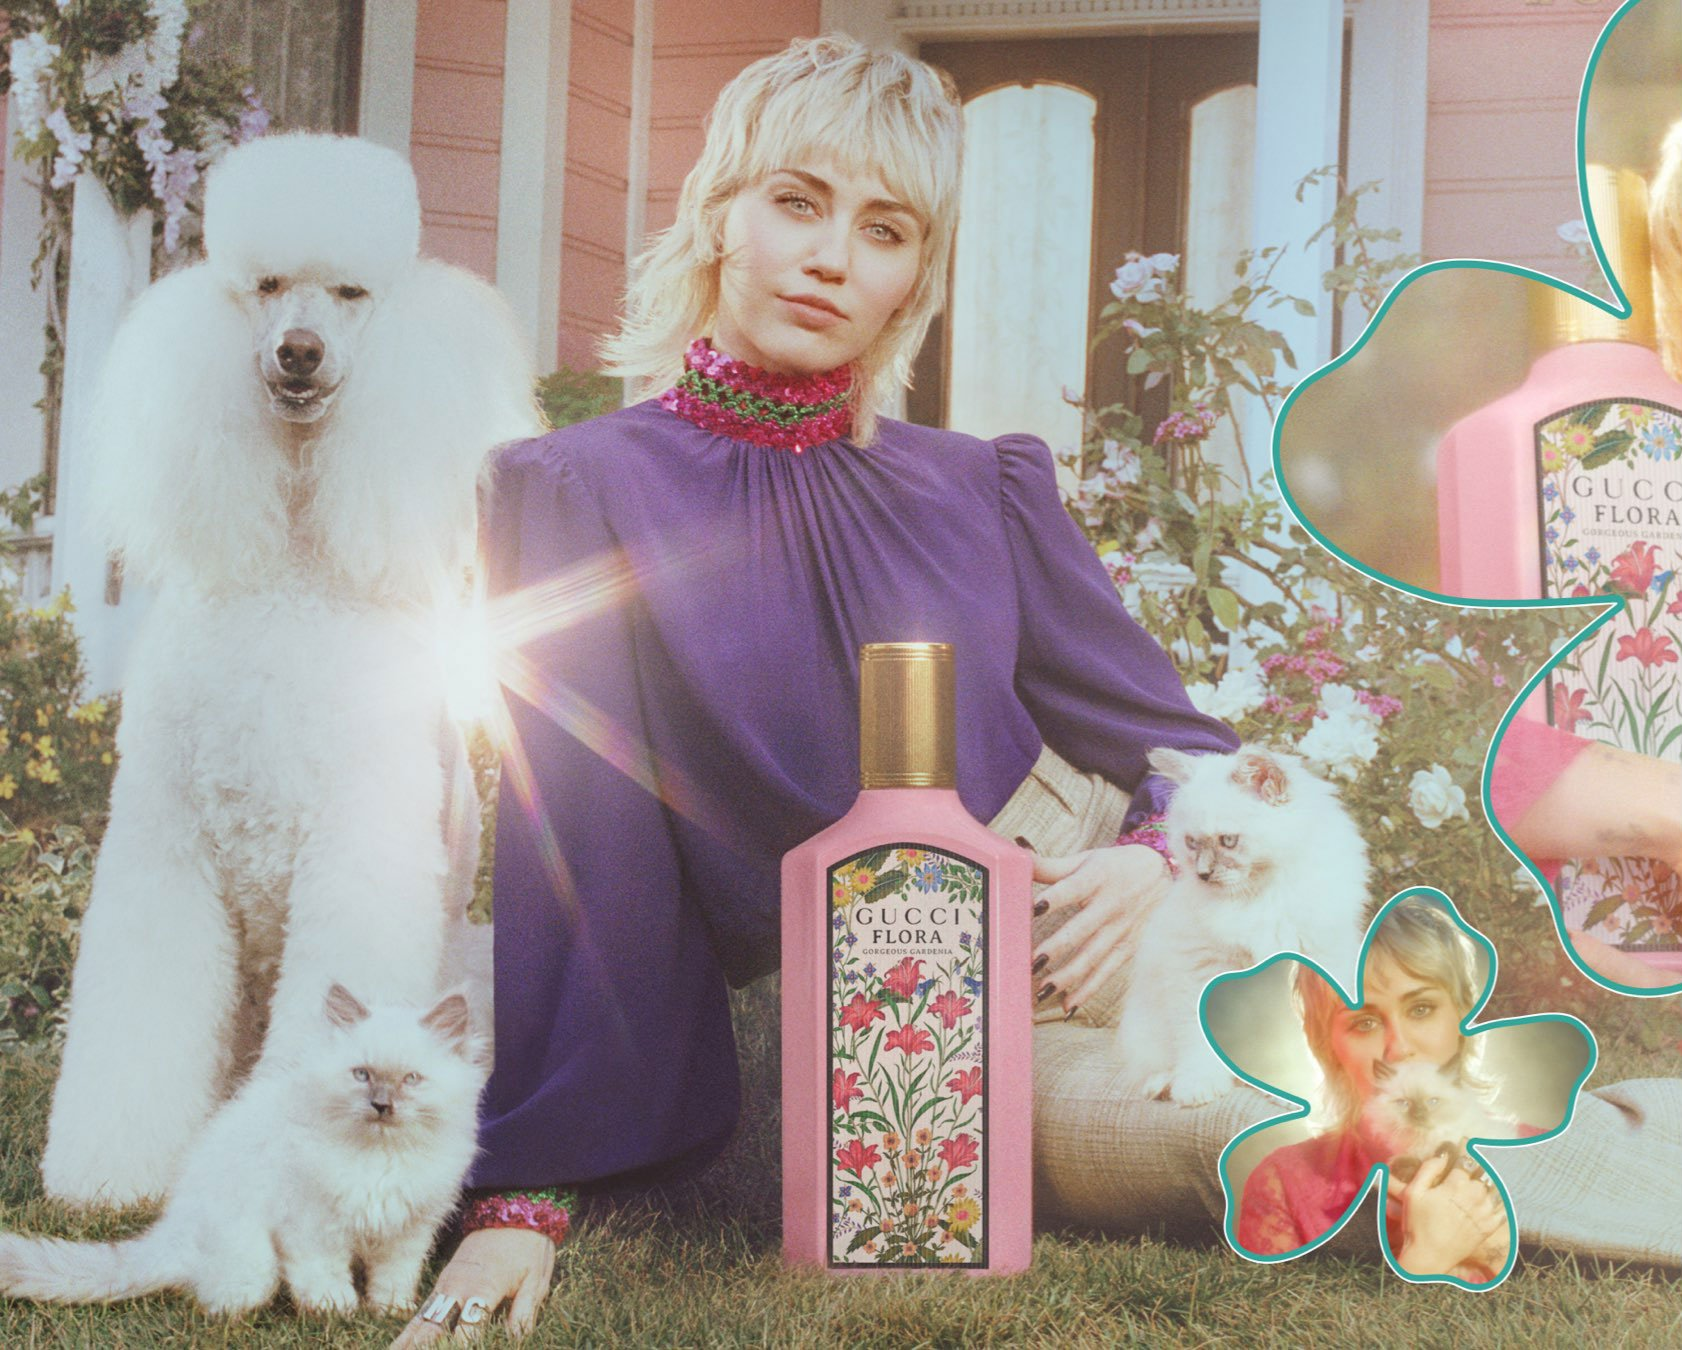 Miley Cyrus sits on a front lawn with flower bushes and is surrounded by a poodle, Persian kittens and oversized fragrance bottle.